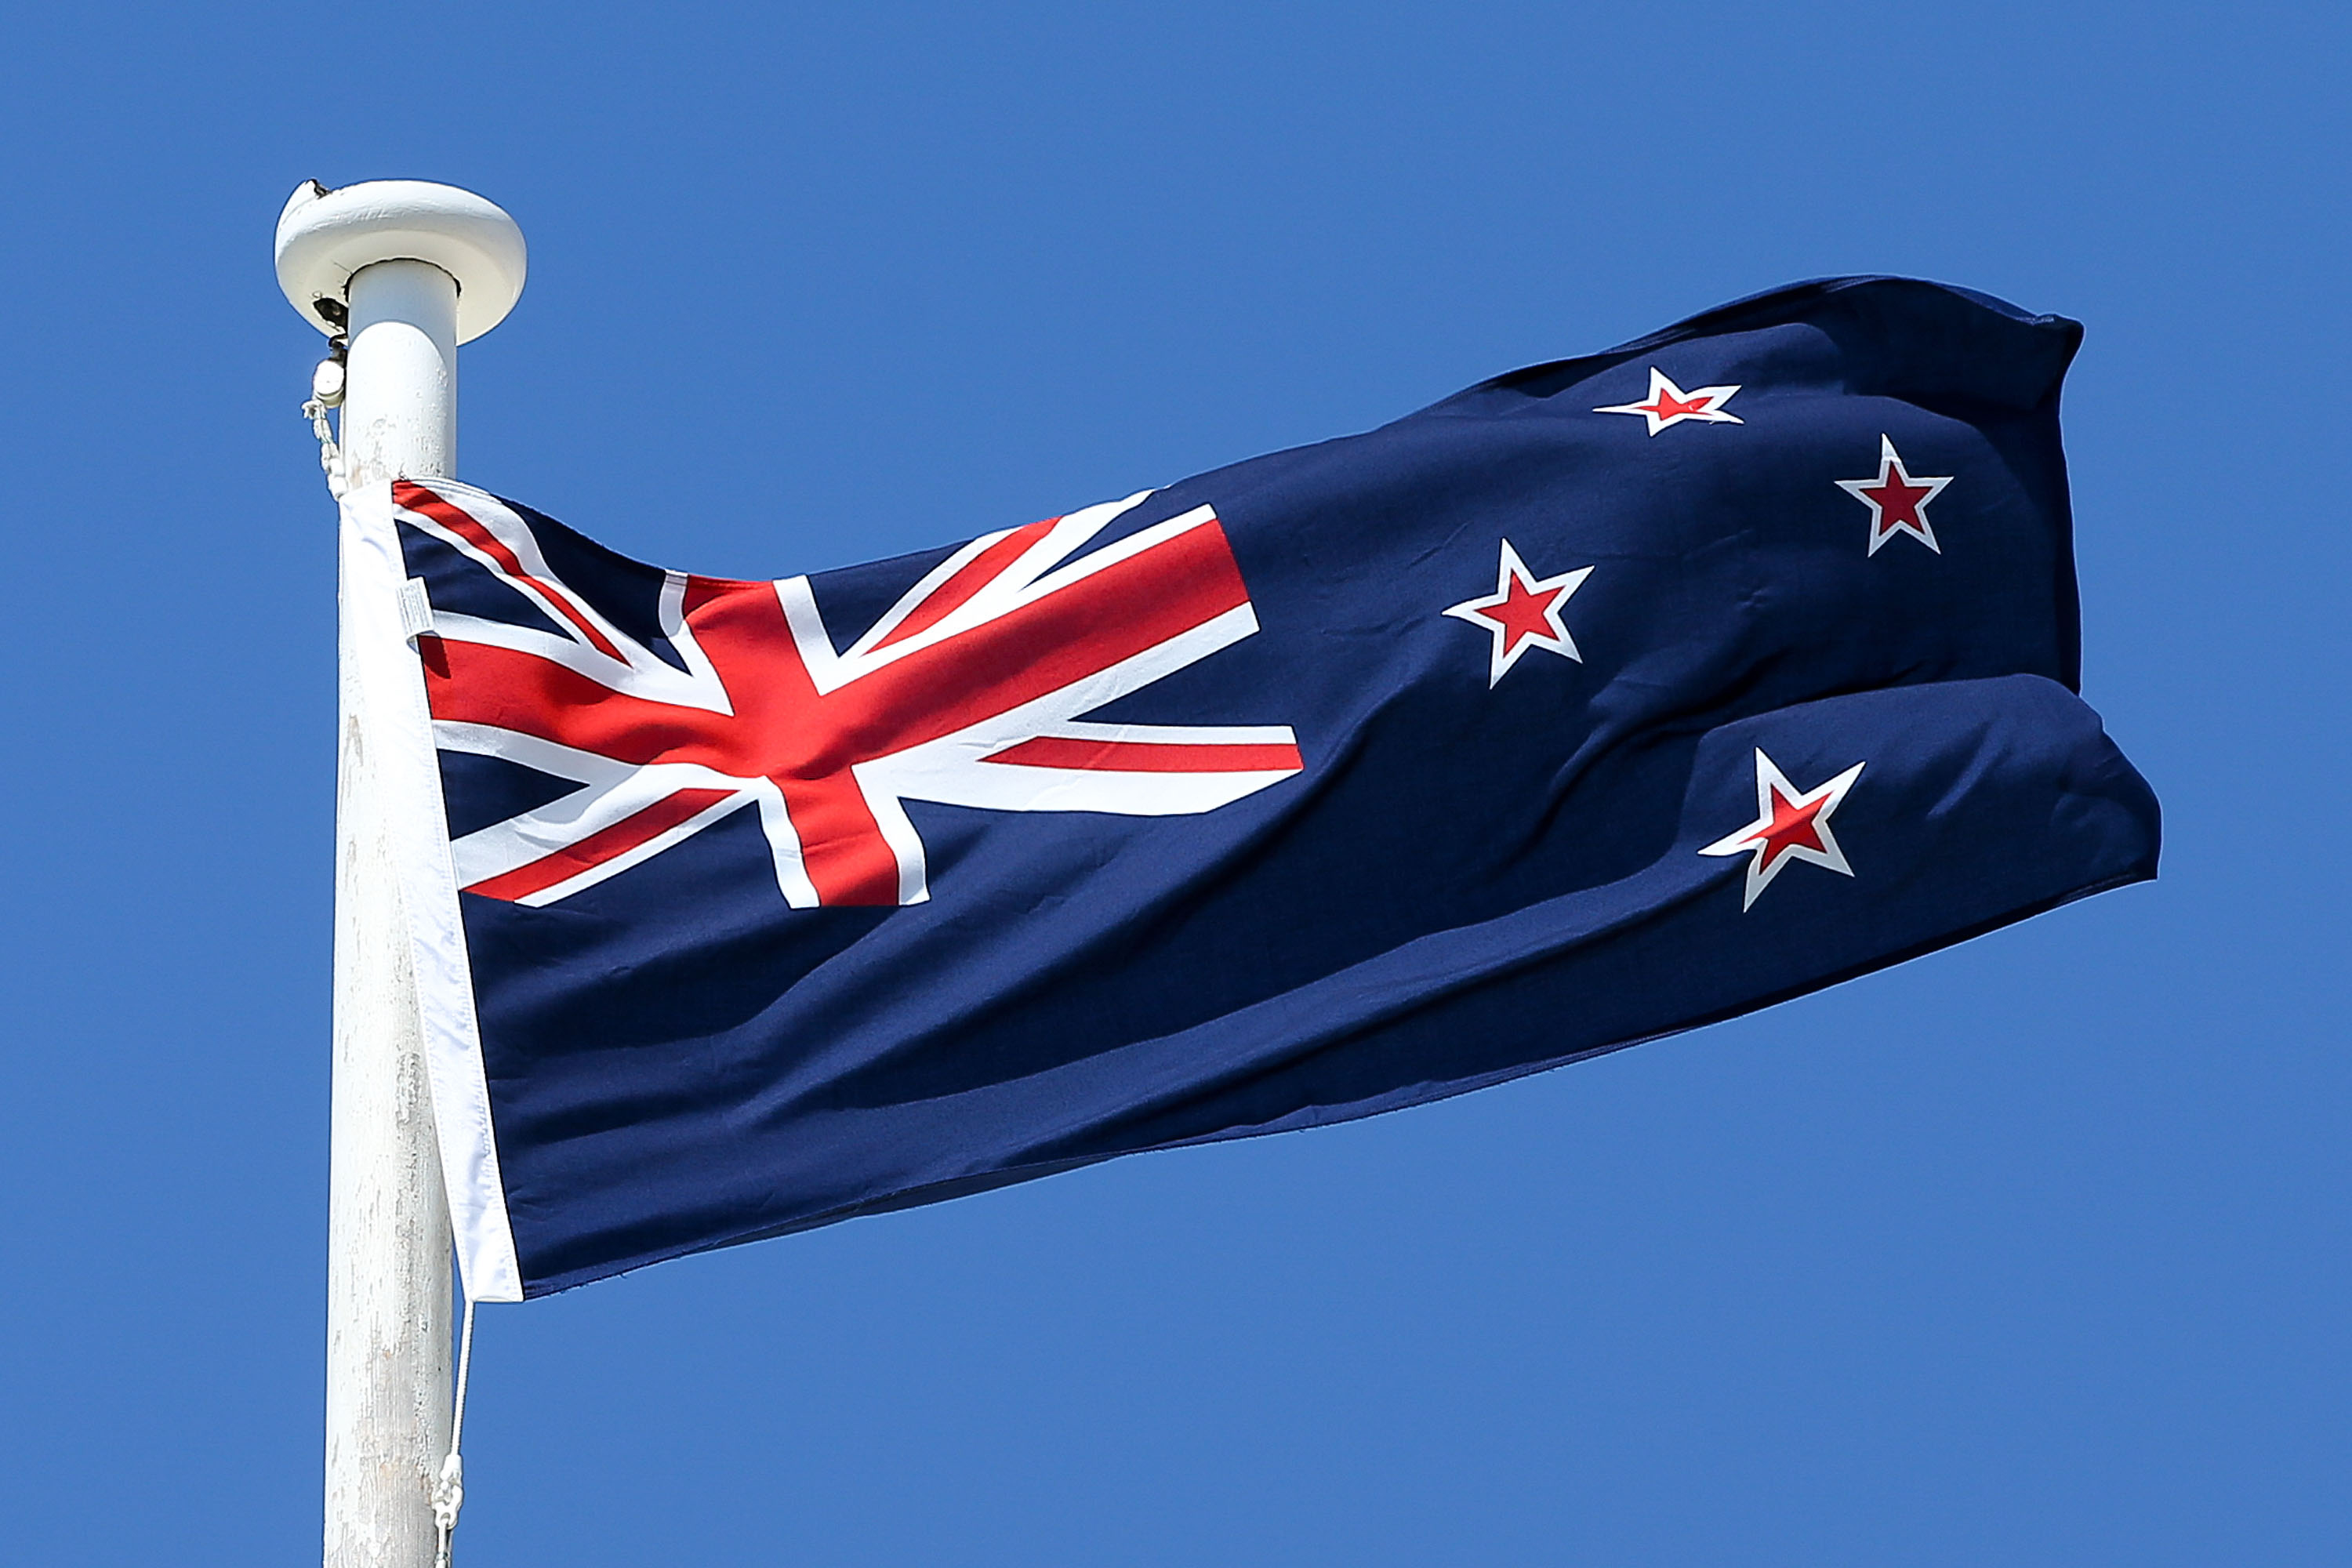 Newzealand National Flag Waving In Wind Hd Wallpaper Download